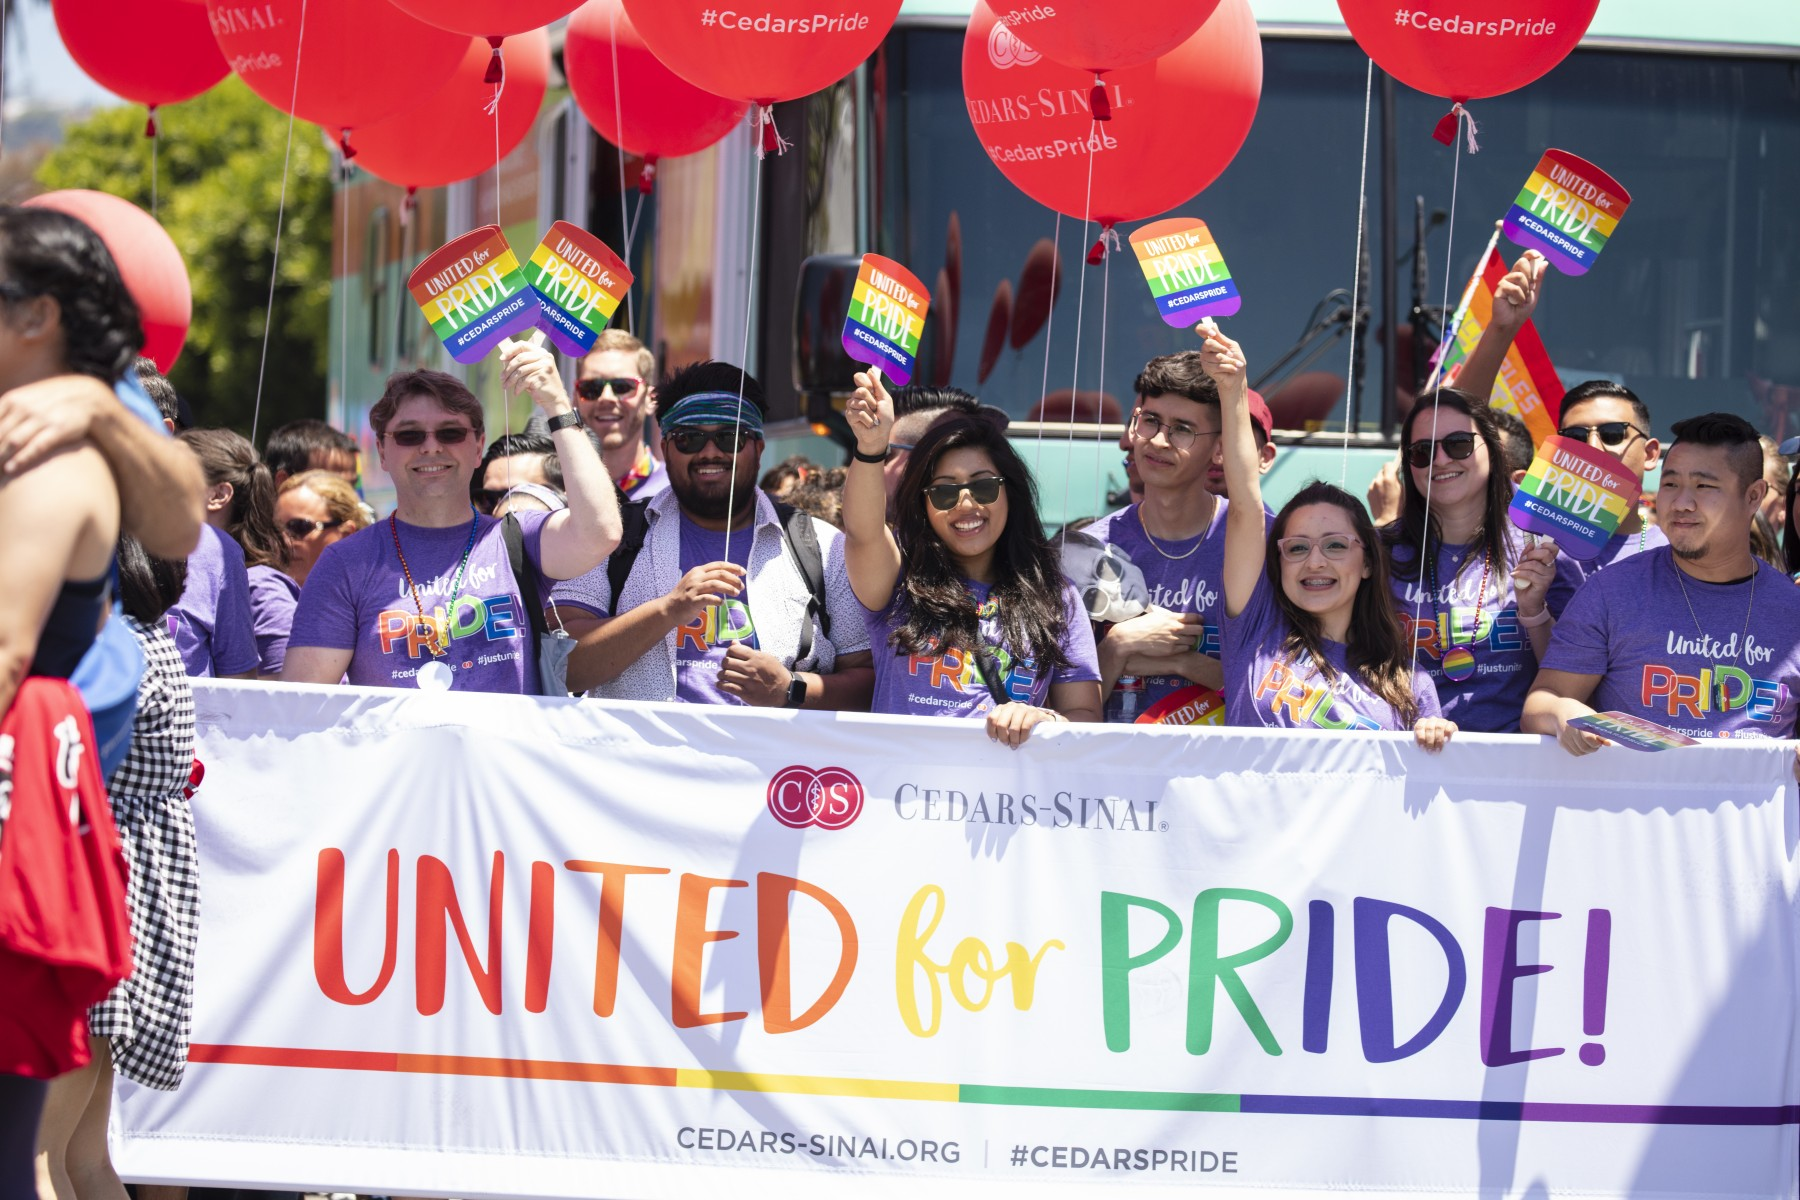 Cedars-Sinai employees and friends celebrate diversity, inclusion and equality at the 2019 LA Pride parade. Photo by Cedars-Sinai.